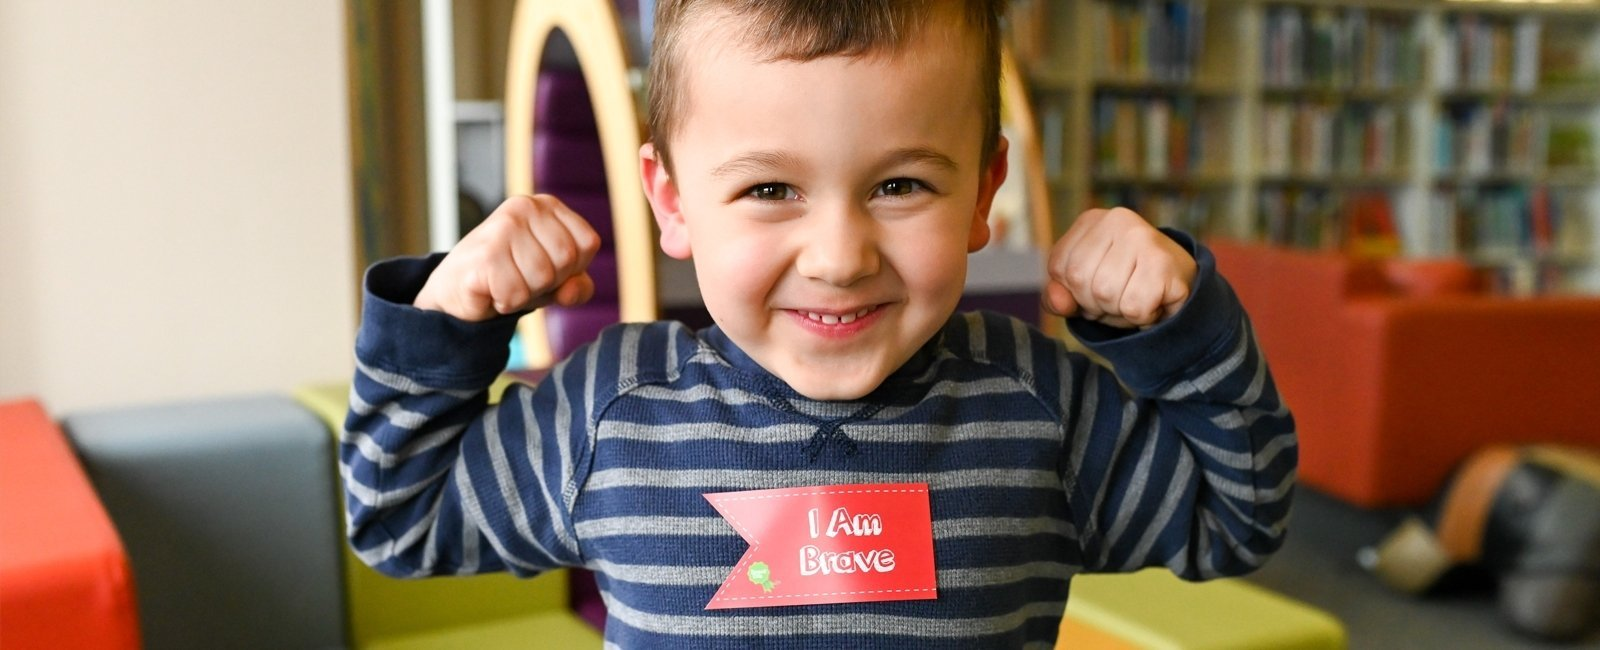 boy wearing i am brave sticker